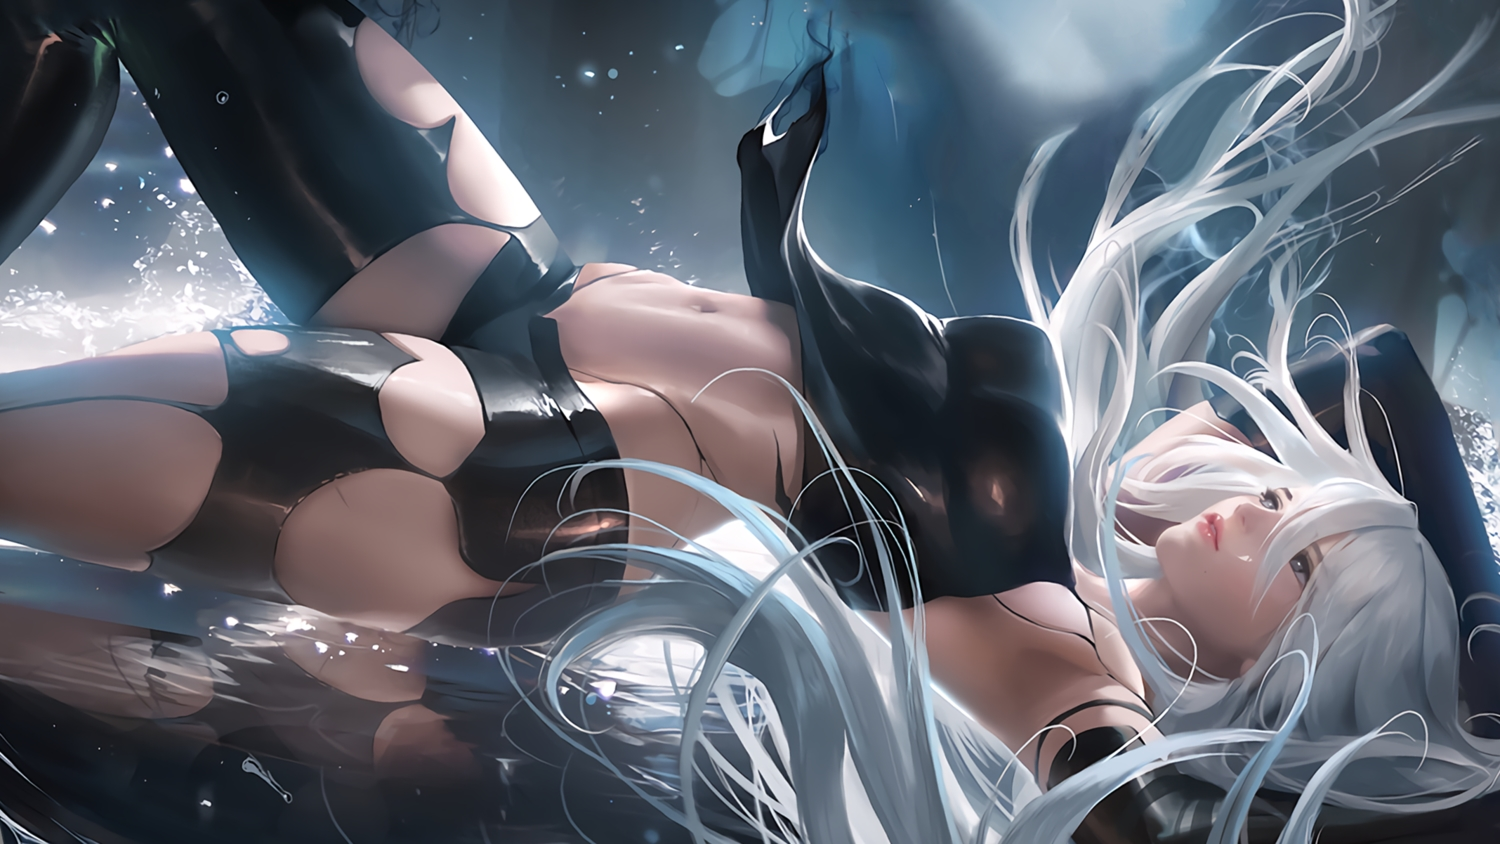 elbow_gloves gloves long_hair navel nier nier:_automata reflection sakimichan shorts signed water watermark white_hair yorha_unit_no._2_type_a